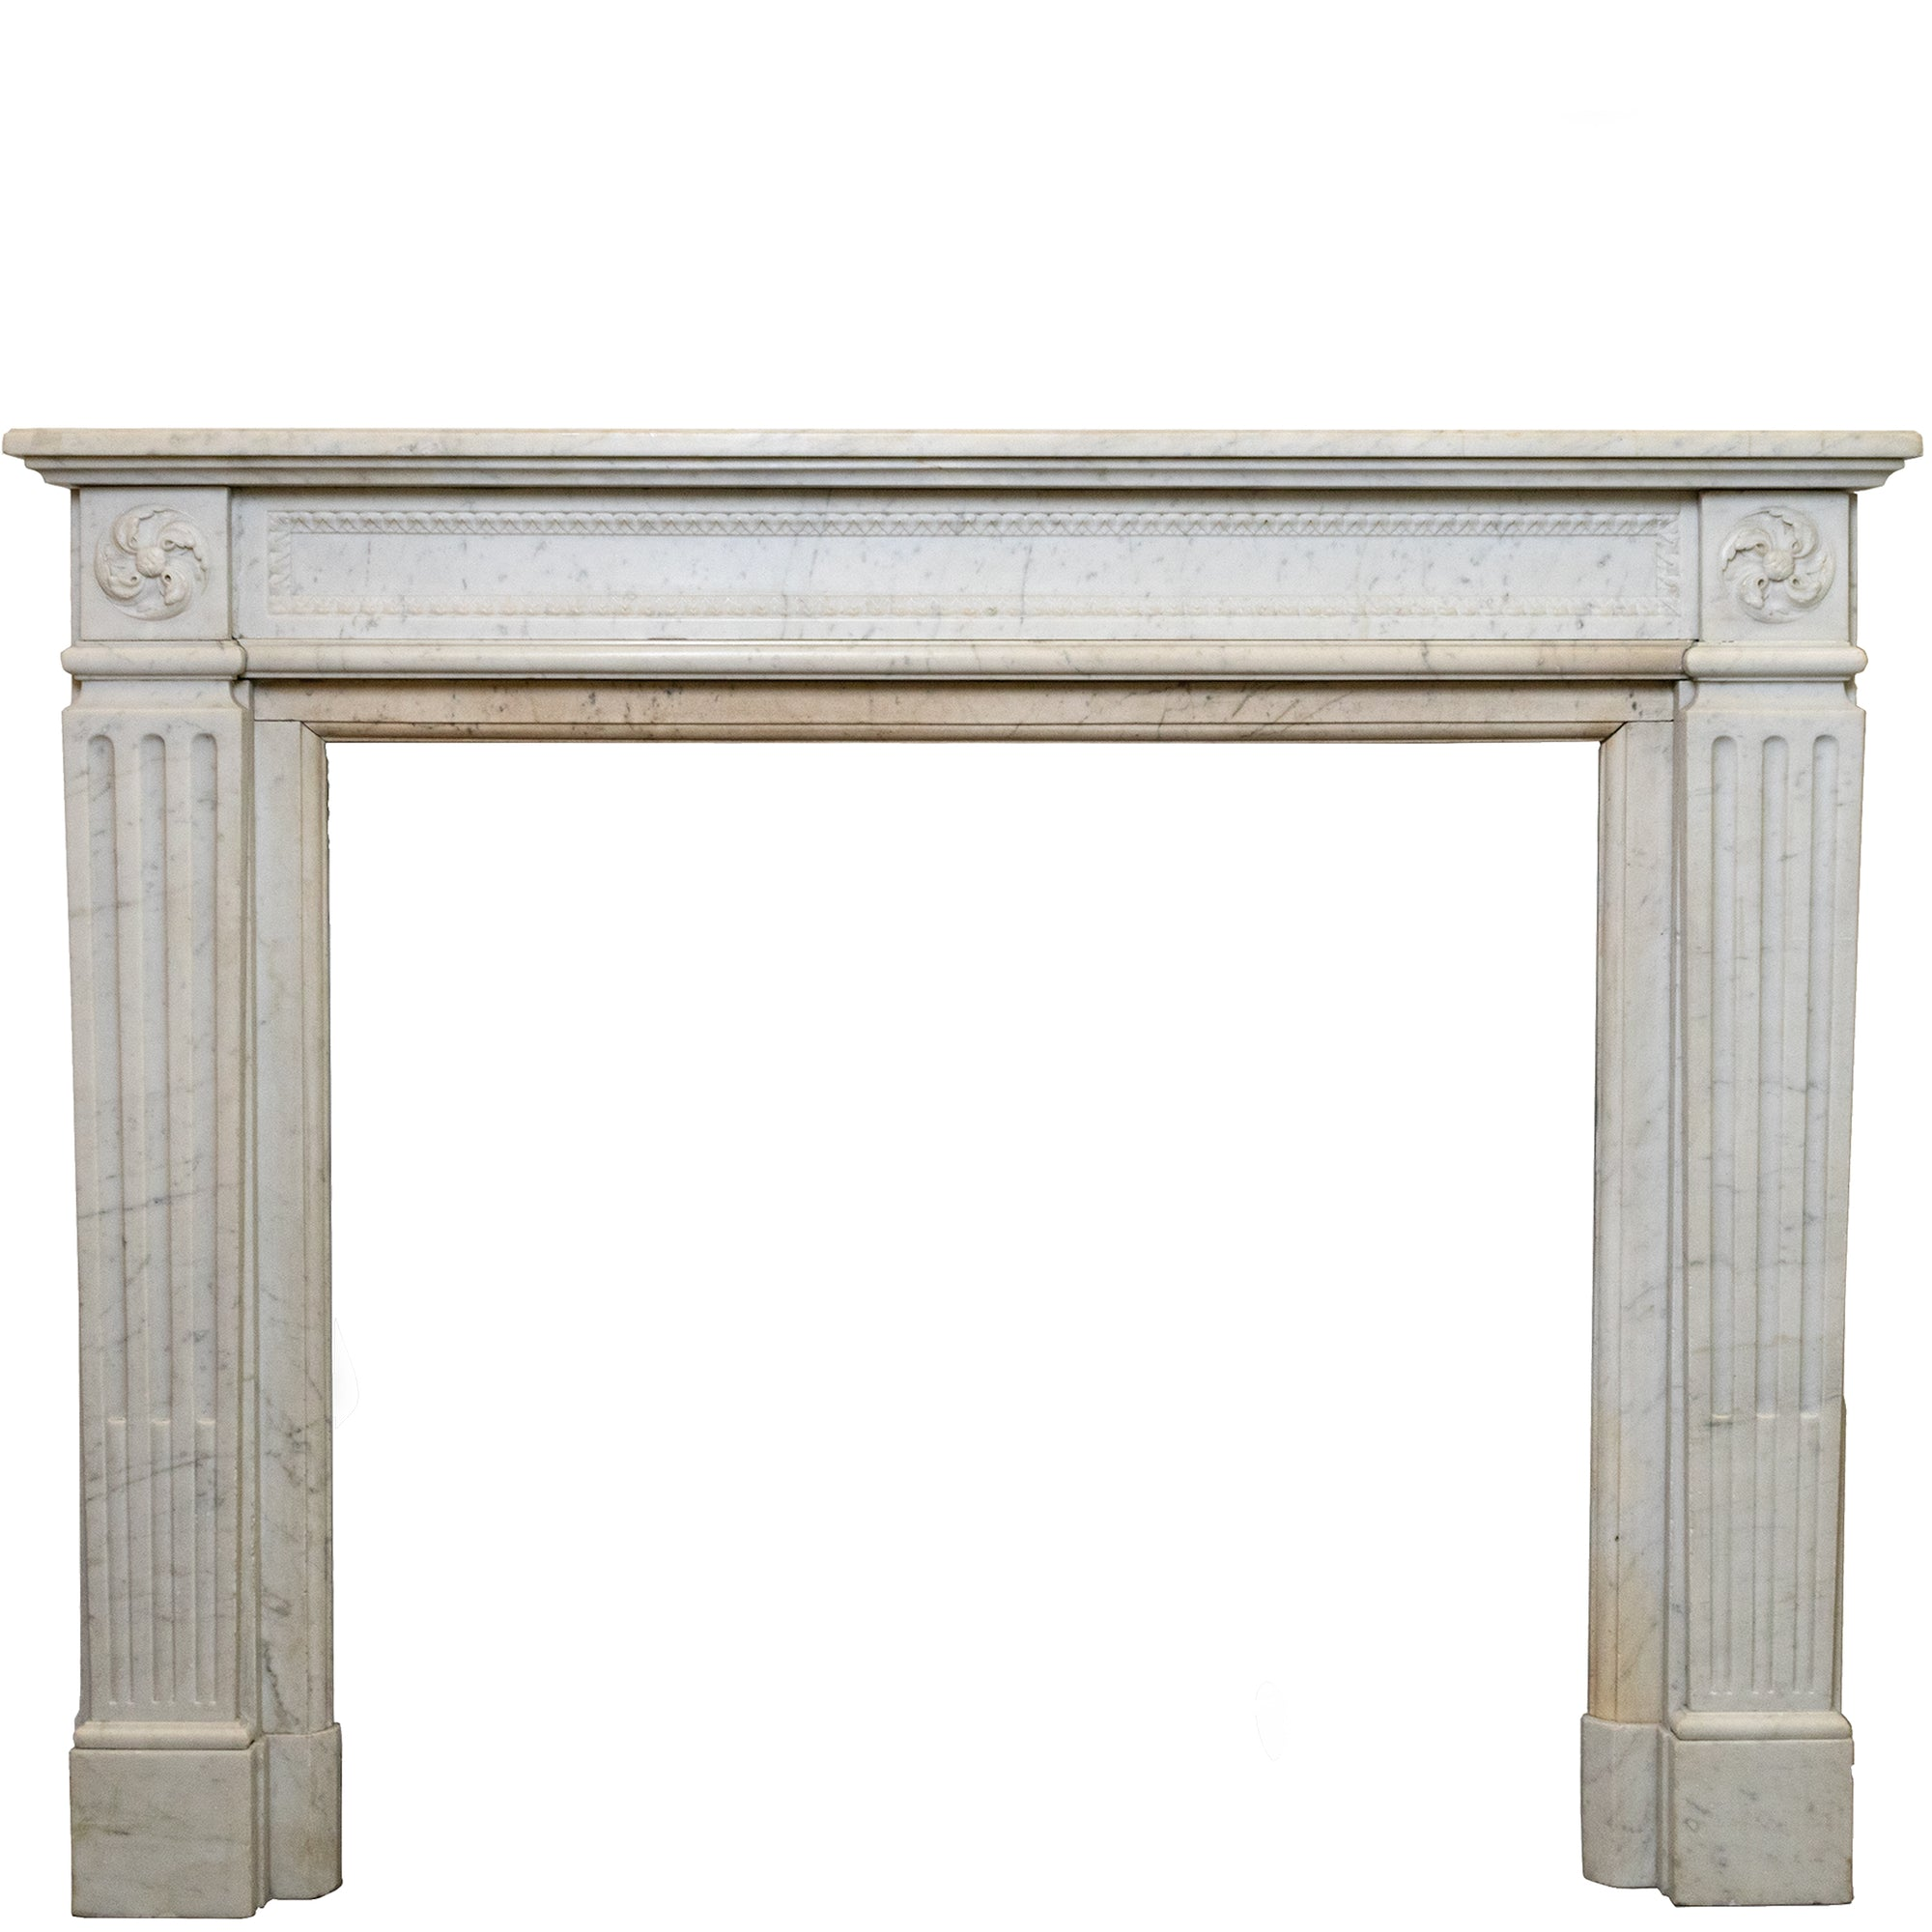 Antique Carrara Marble Louis XVI Style Chimneypiece